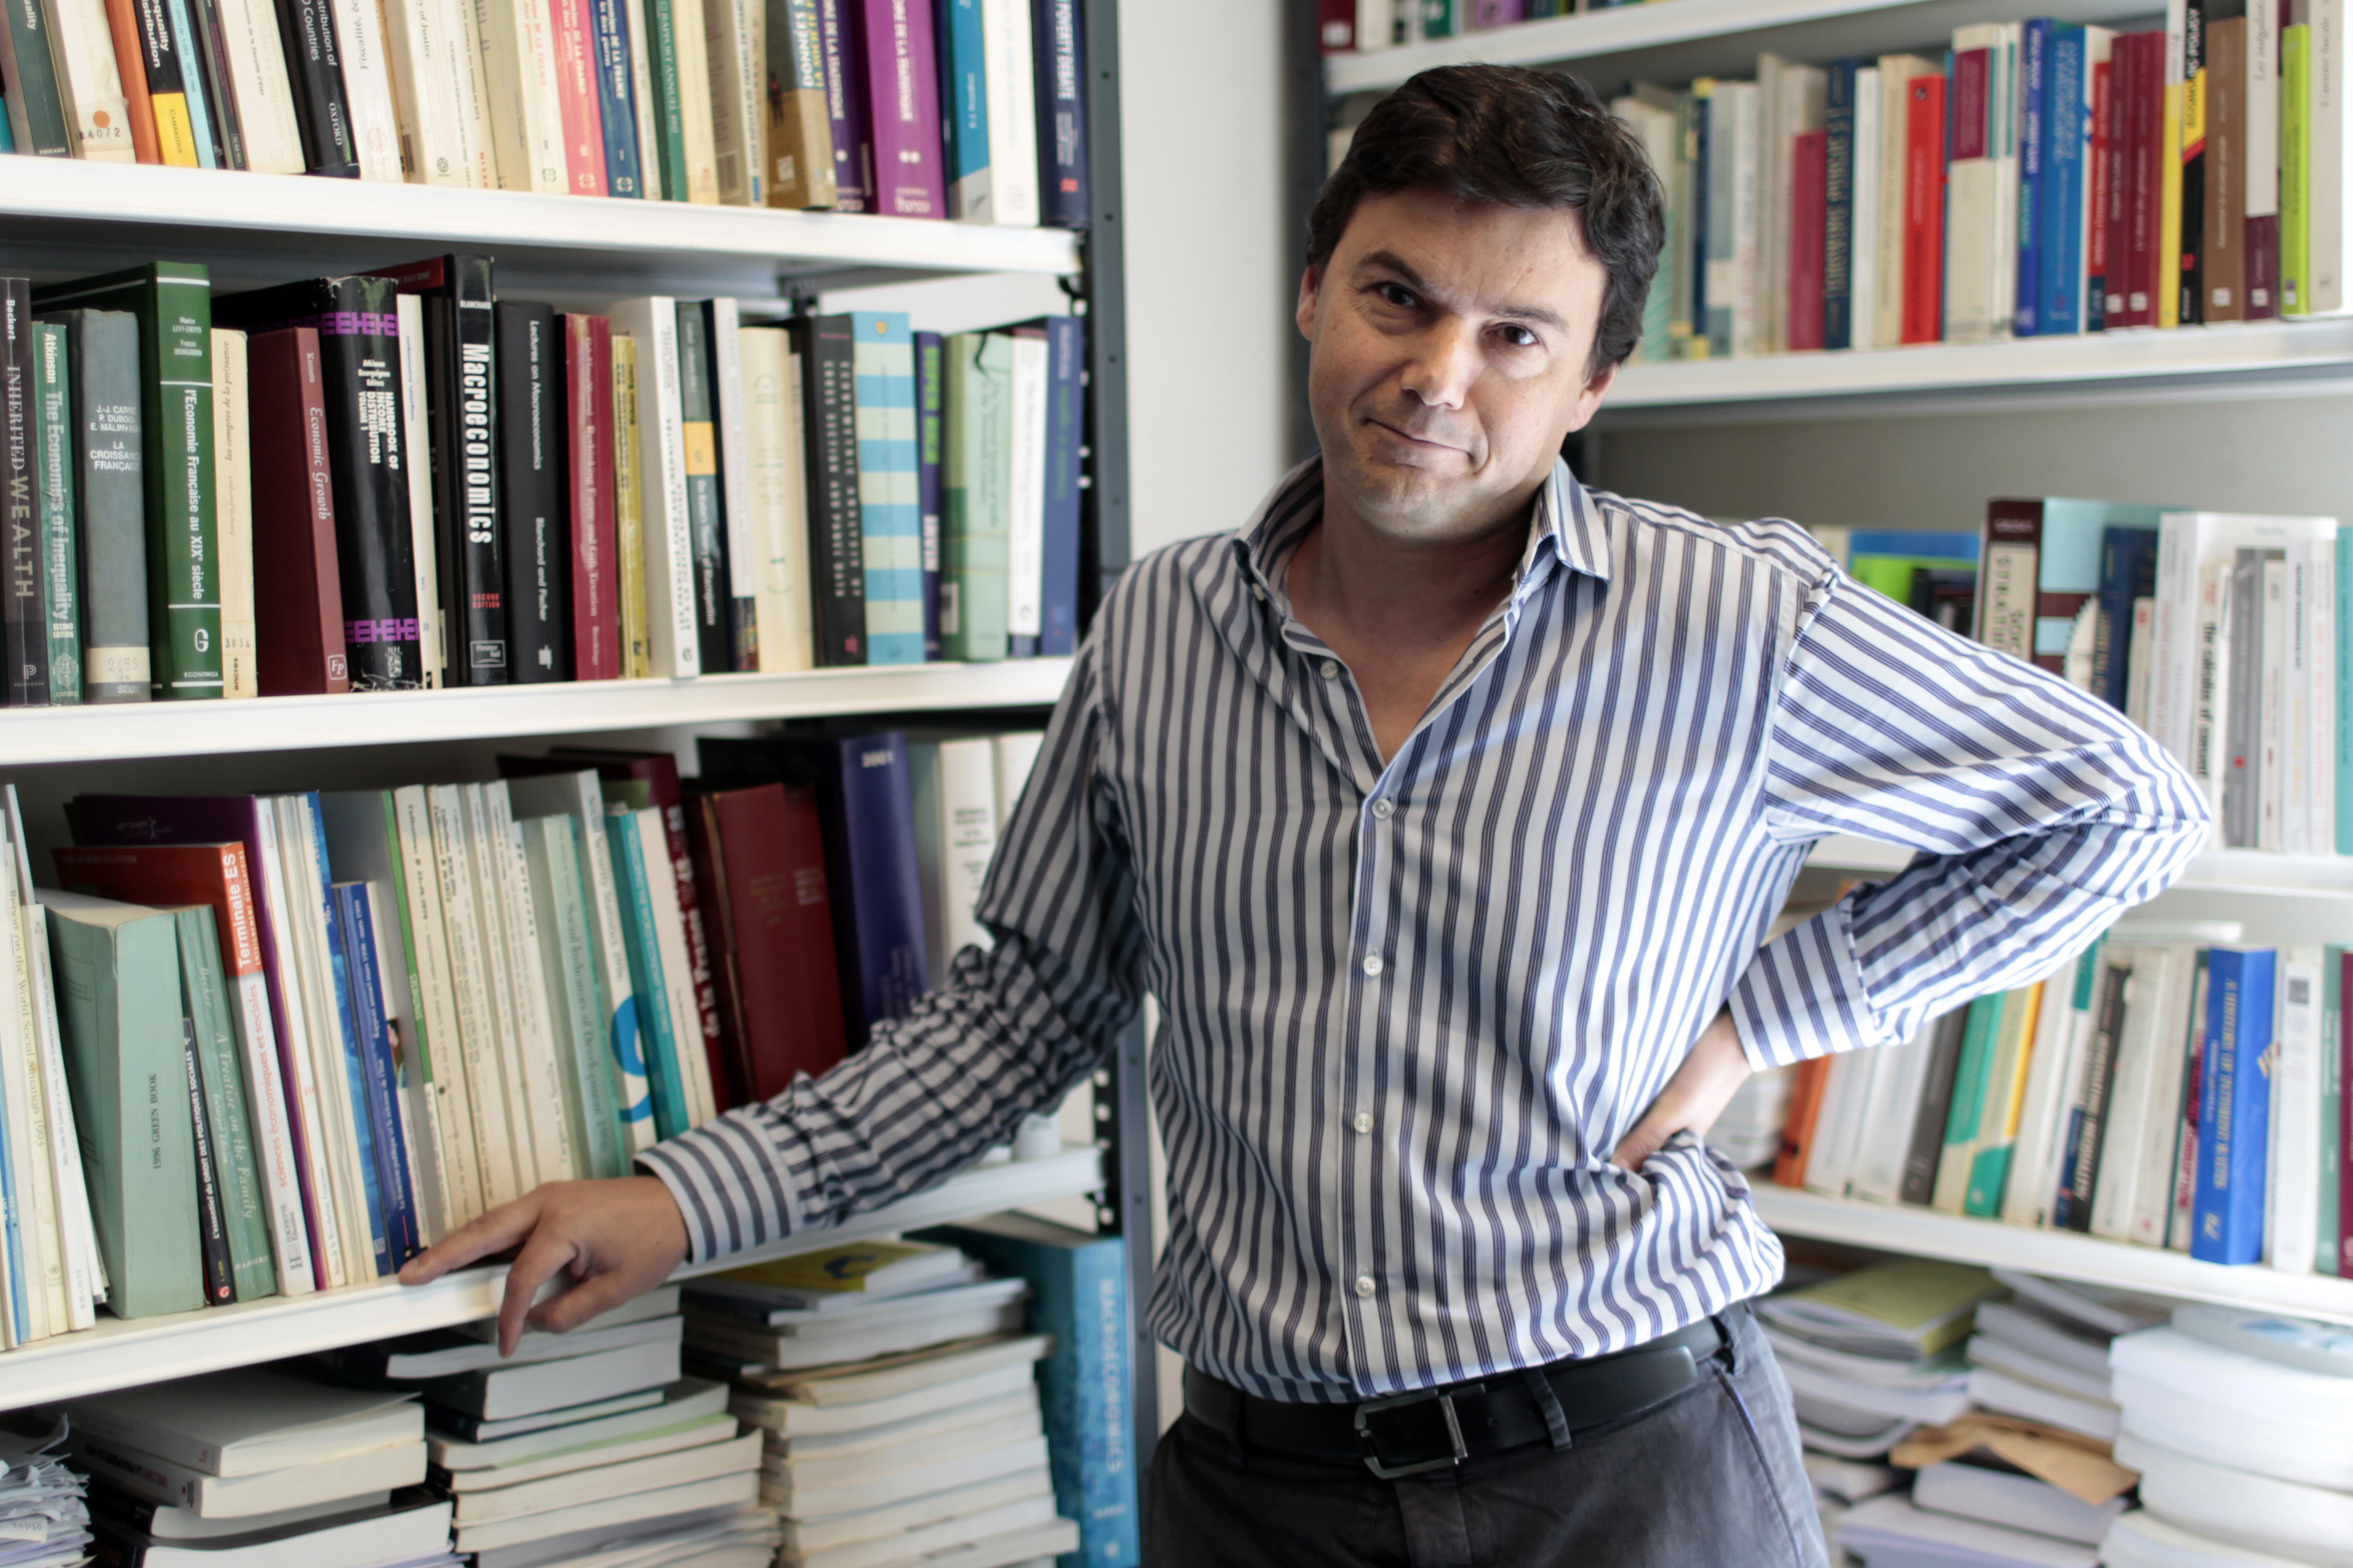 On Tour With Rock-Star Economist THOMAS PIKETTY - General News.